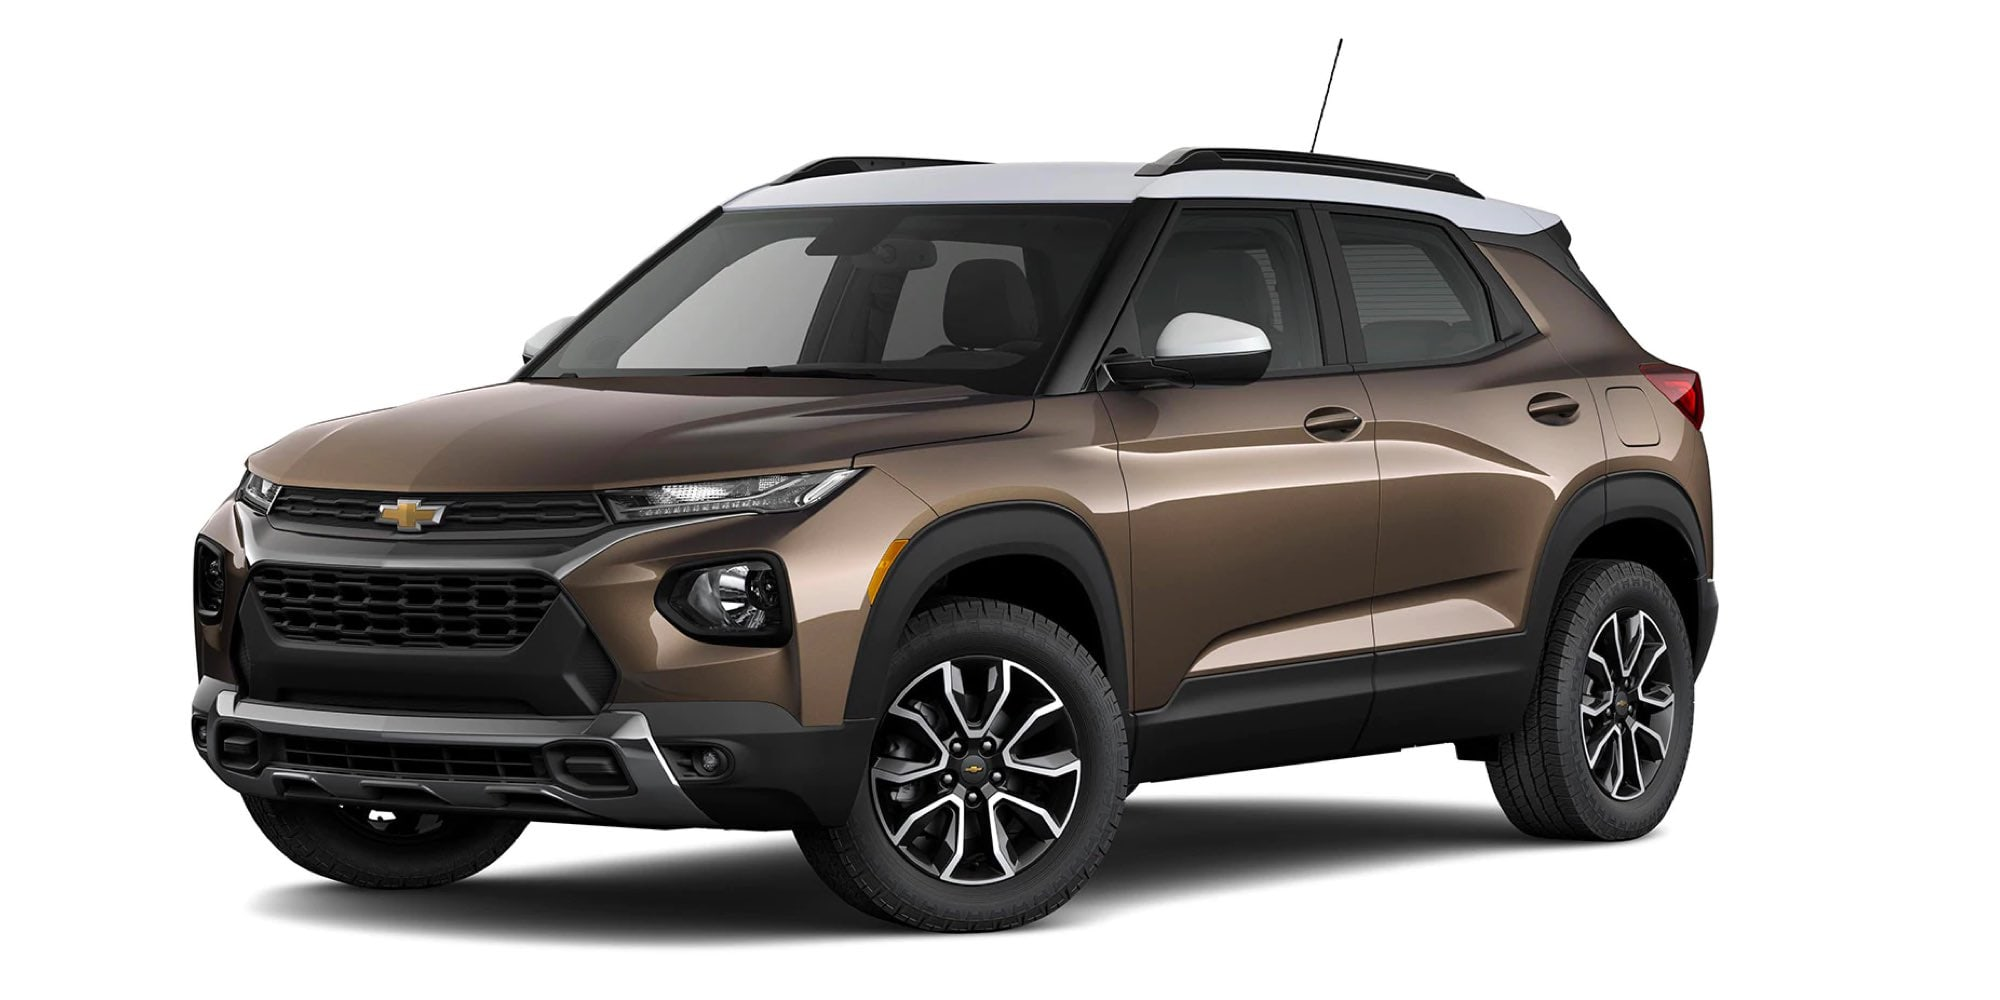 2021 Chevy Trailblazer in two-tone ZEUS BRONZE METALLIC / SUMMIT WHITE